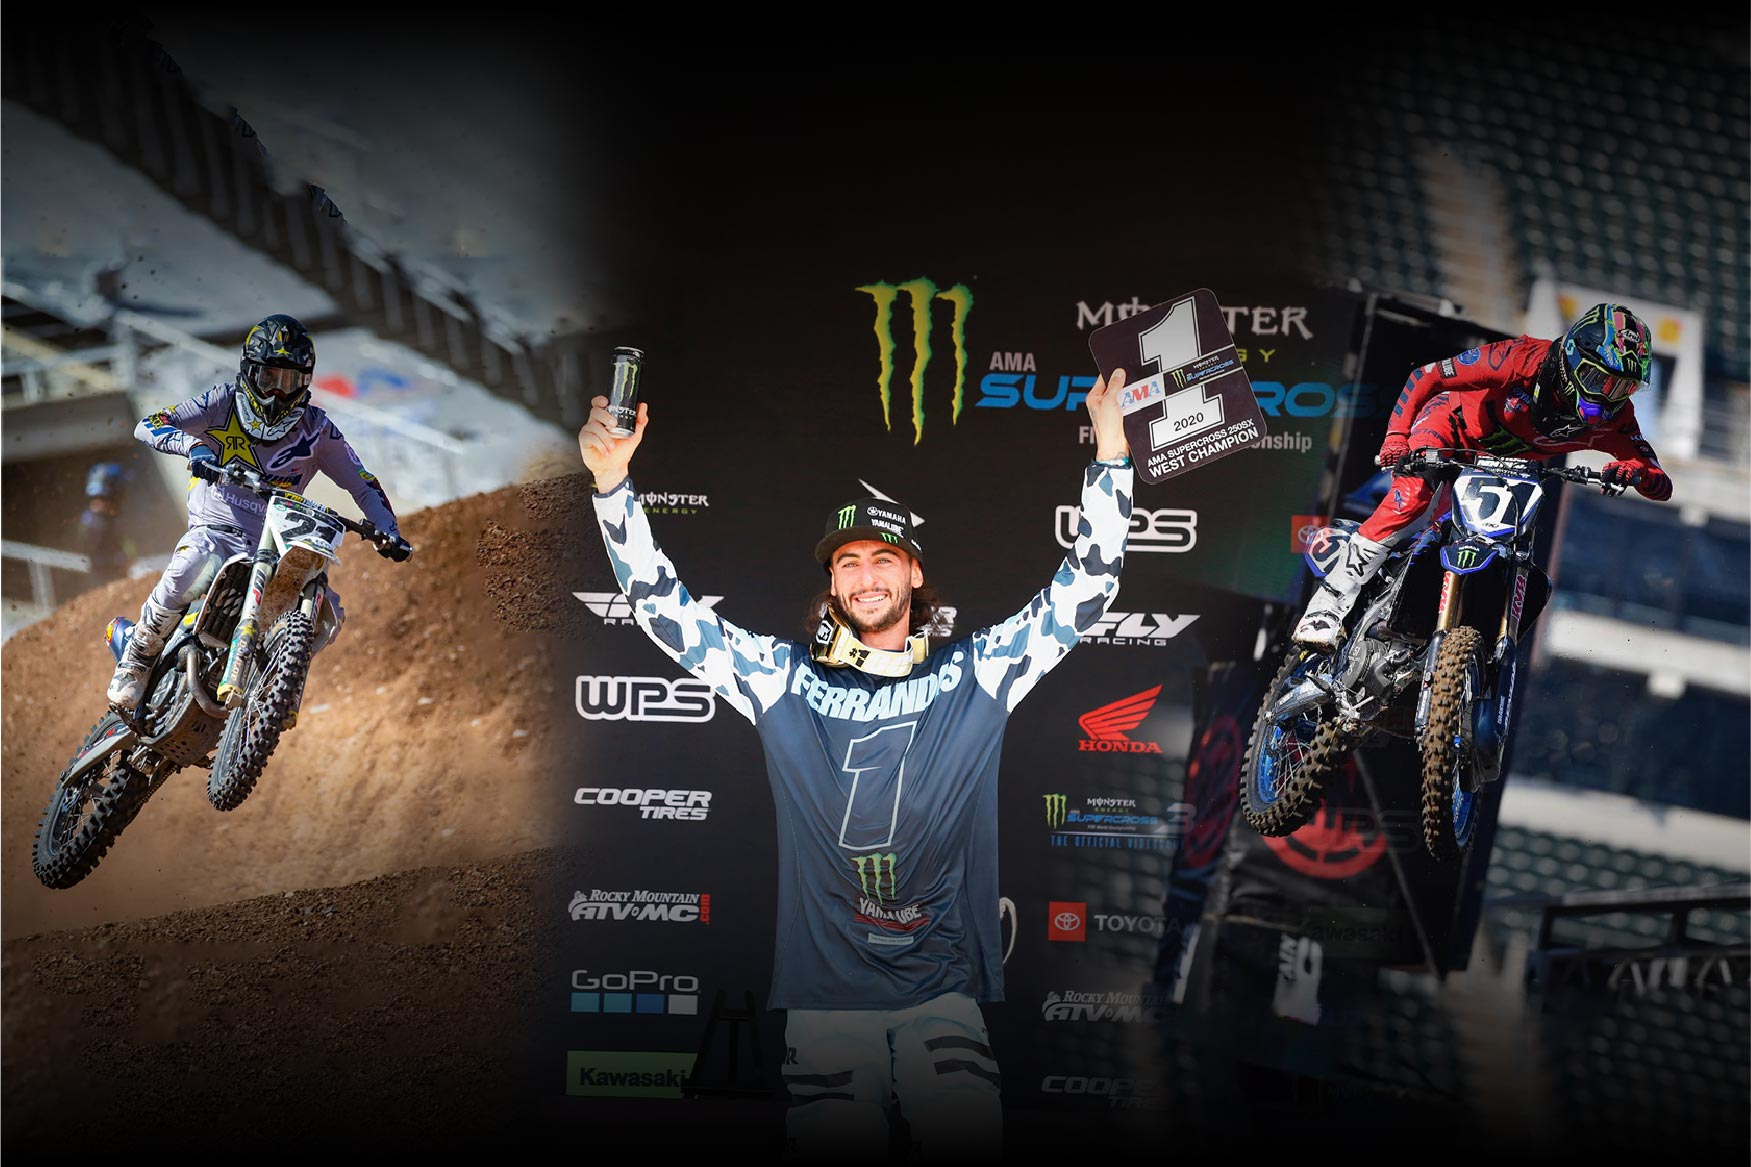 2020 Monster Energy AMA Supercross Season Wrap-Up